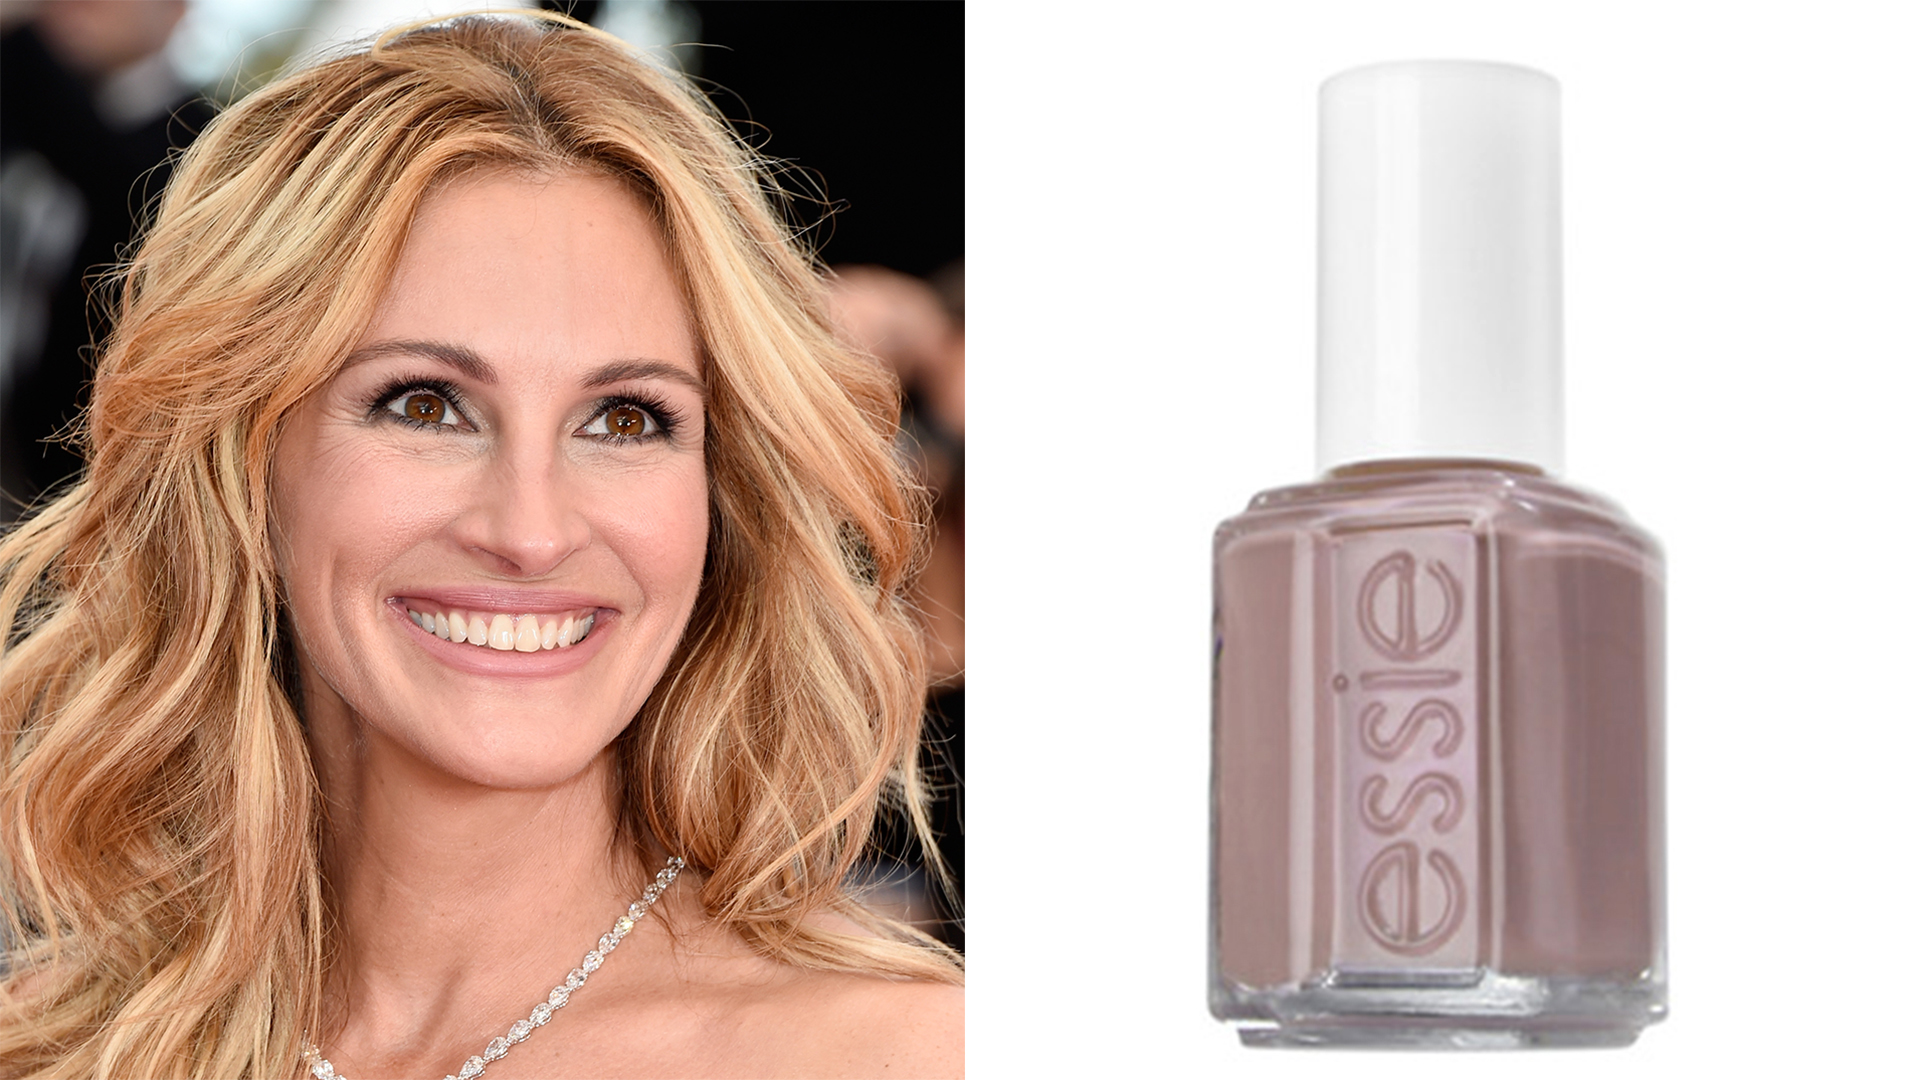 Nude nails: How to find the right nude nail polish for you